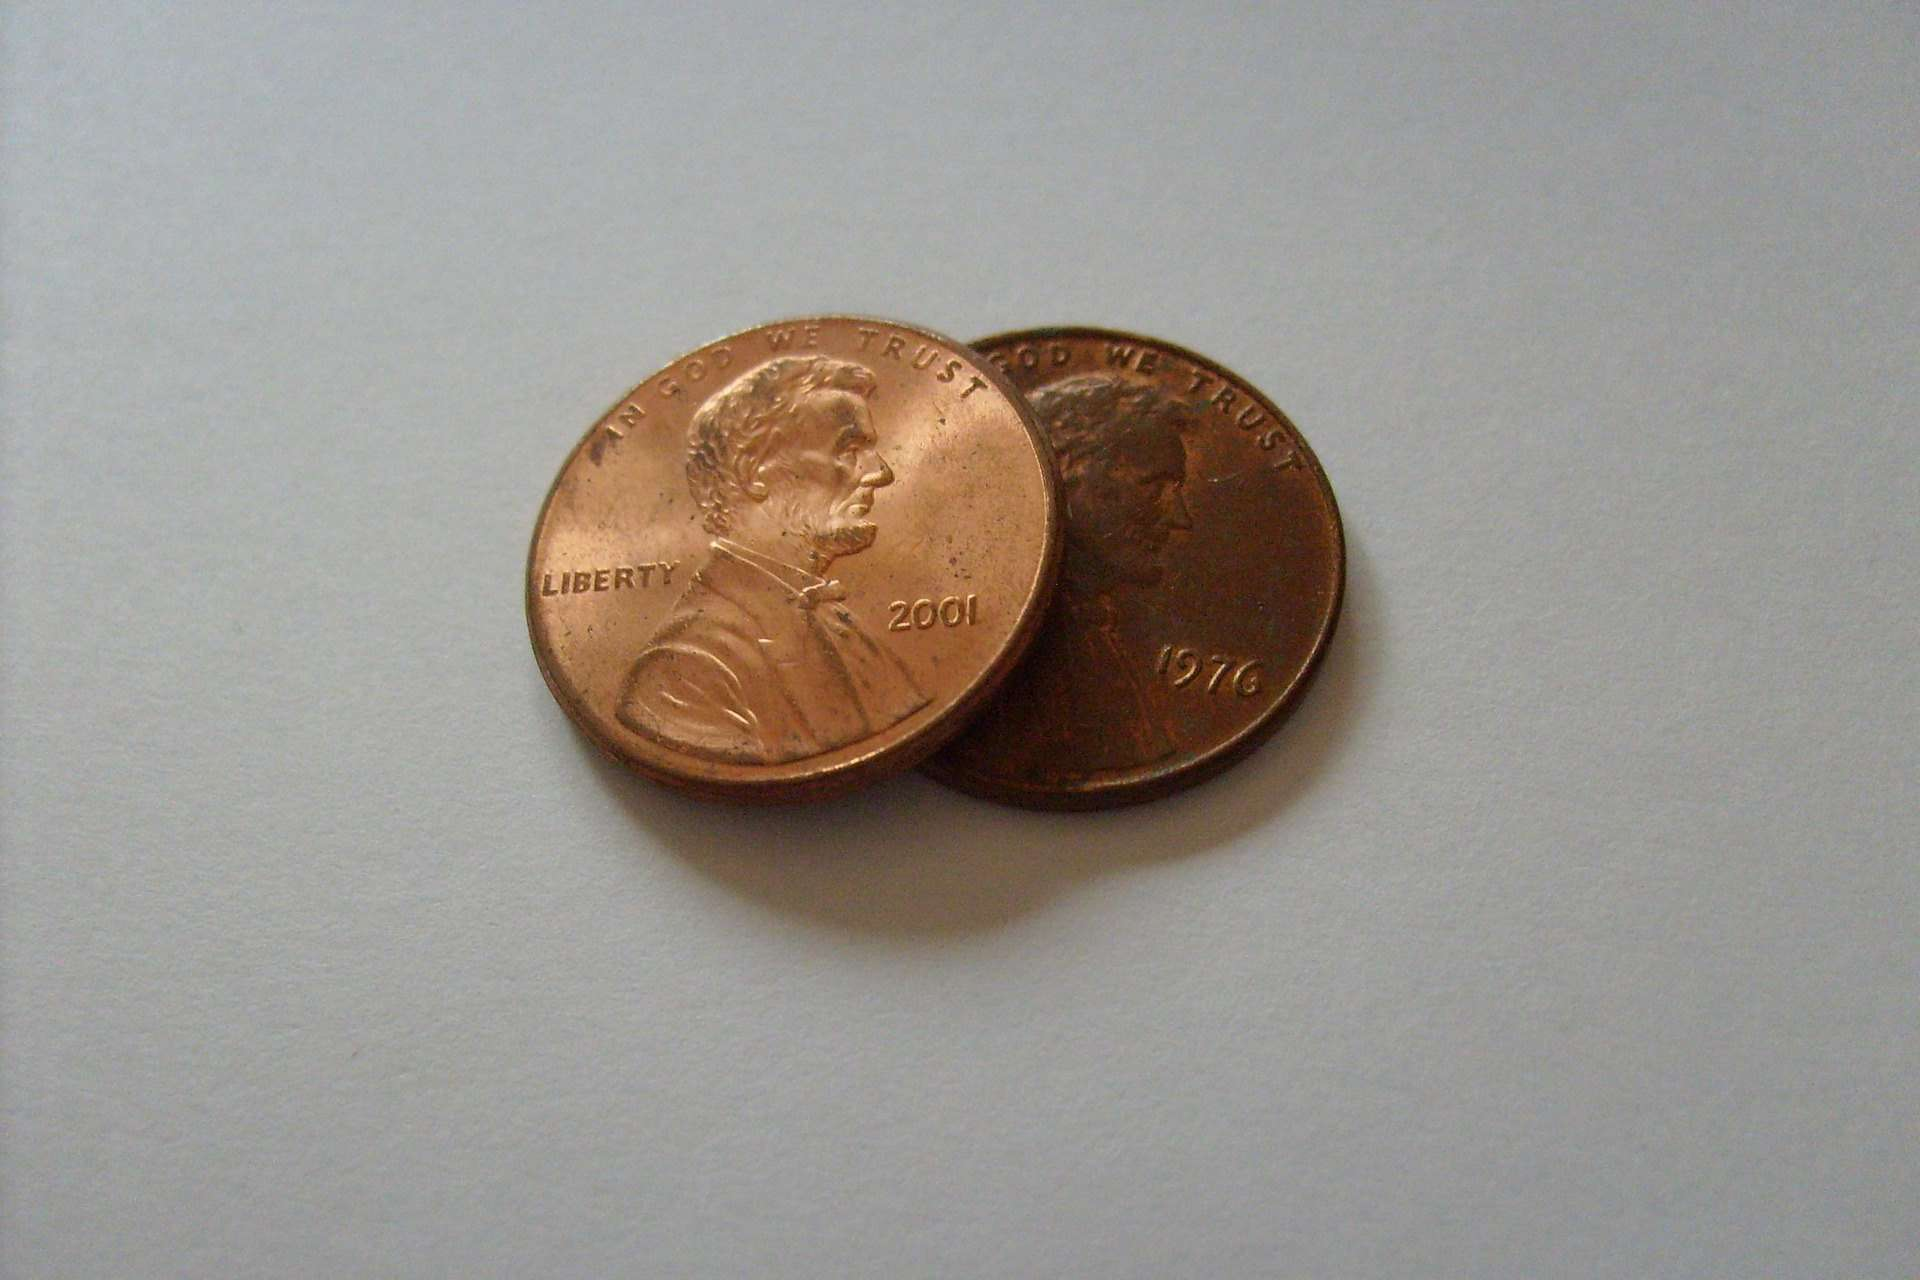 1976 Lincoln Memorial Penny: Copper Penny Hoarding Increases